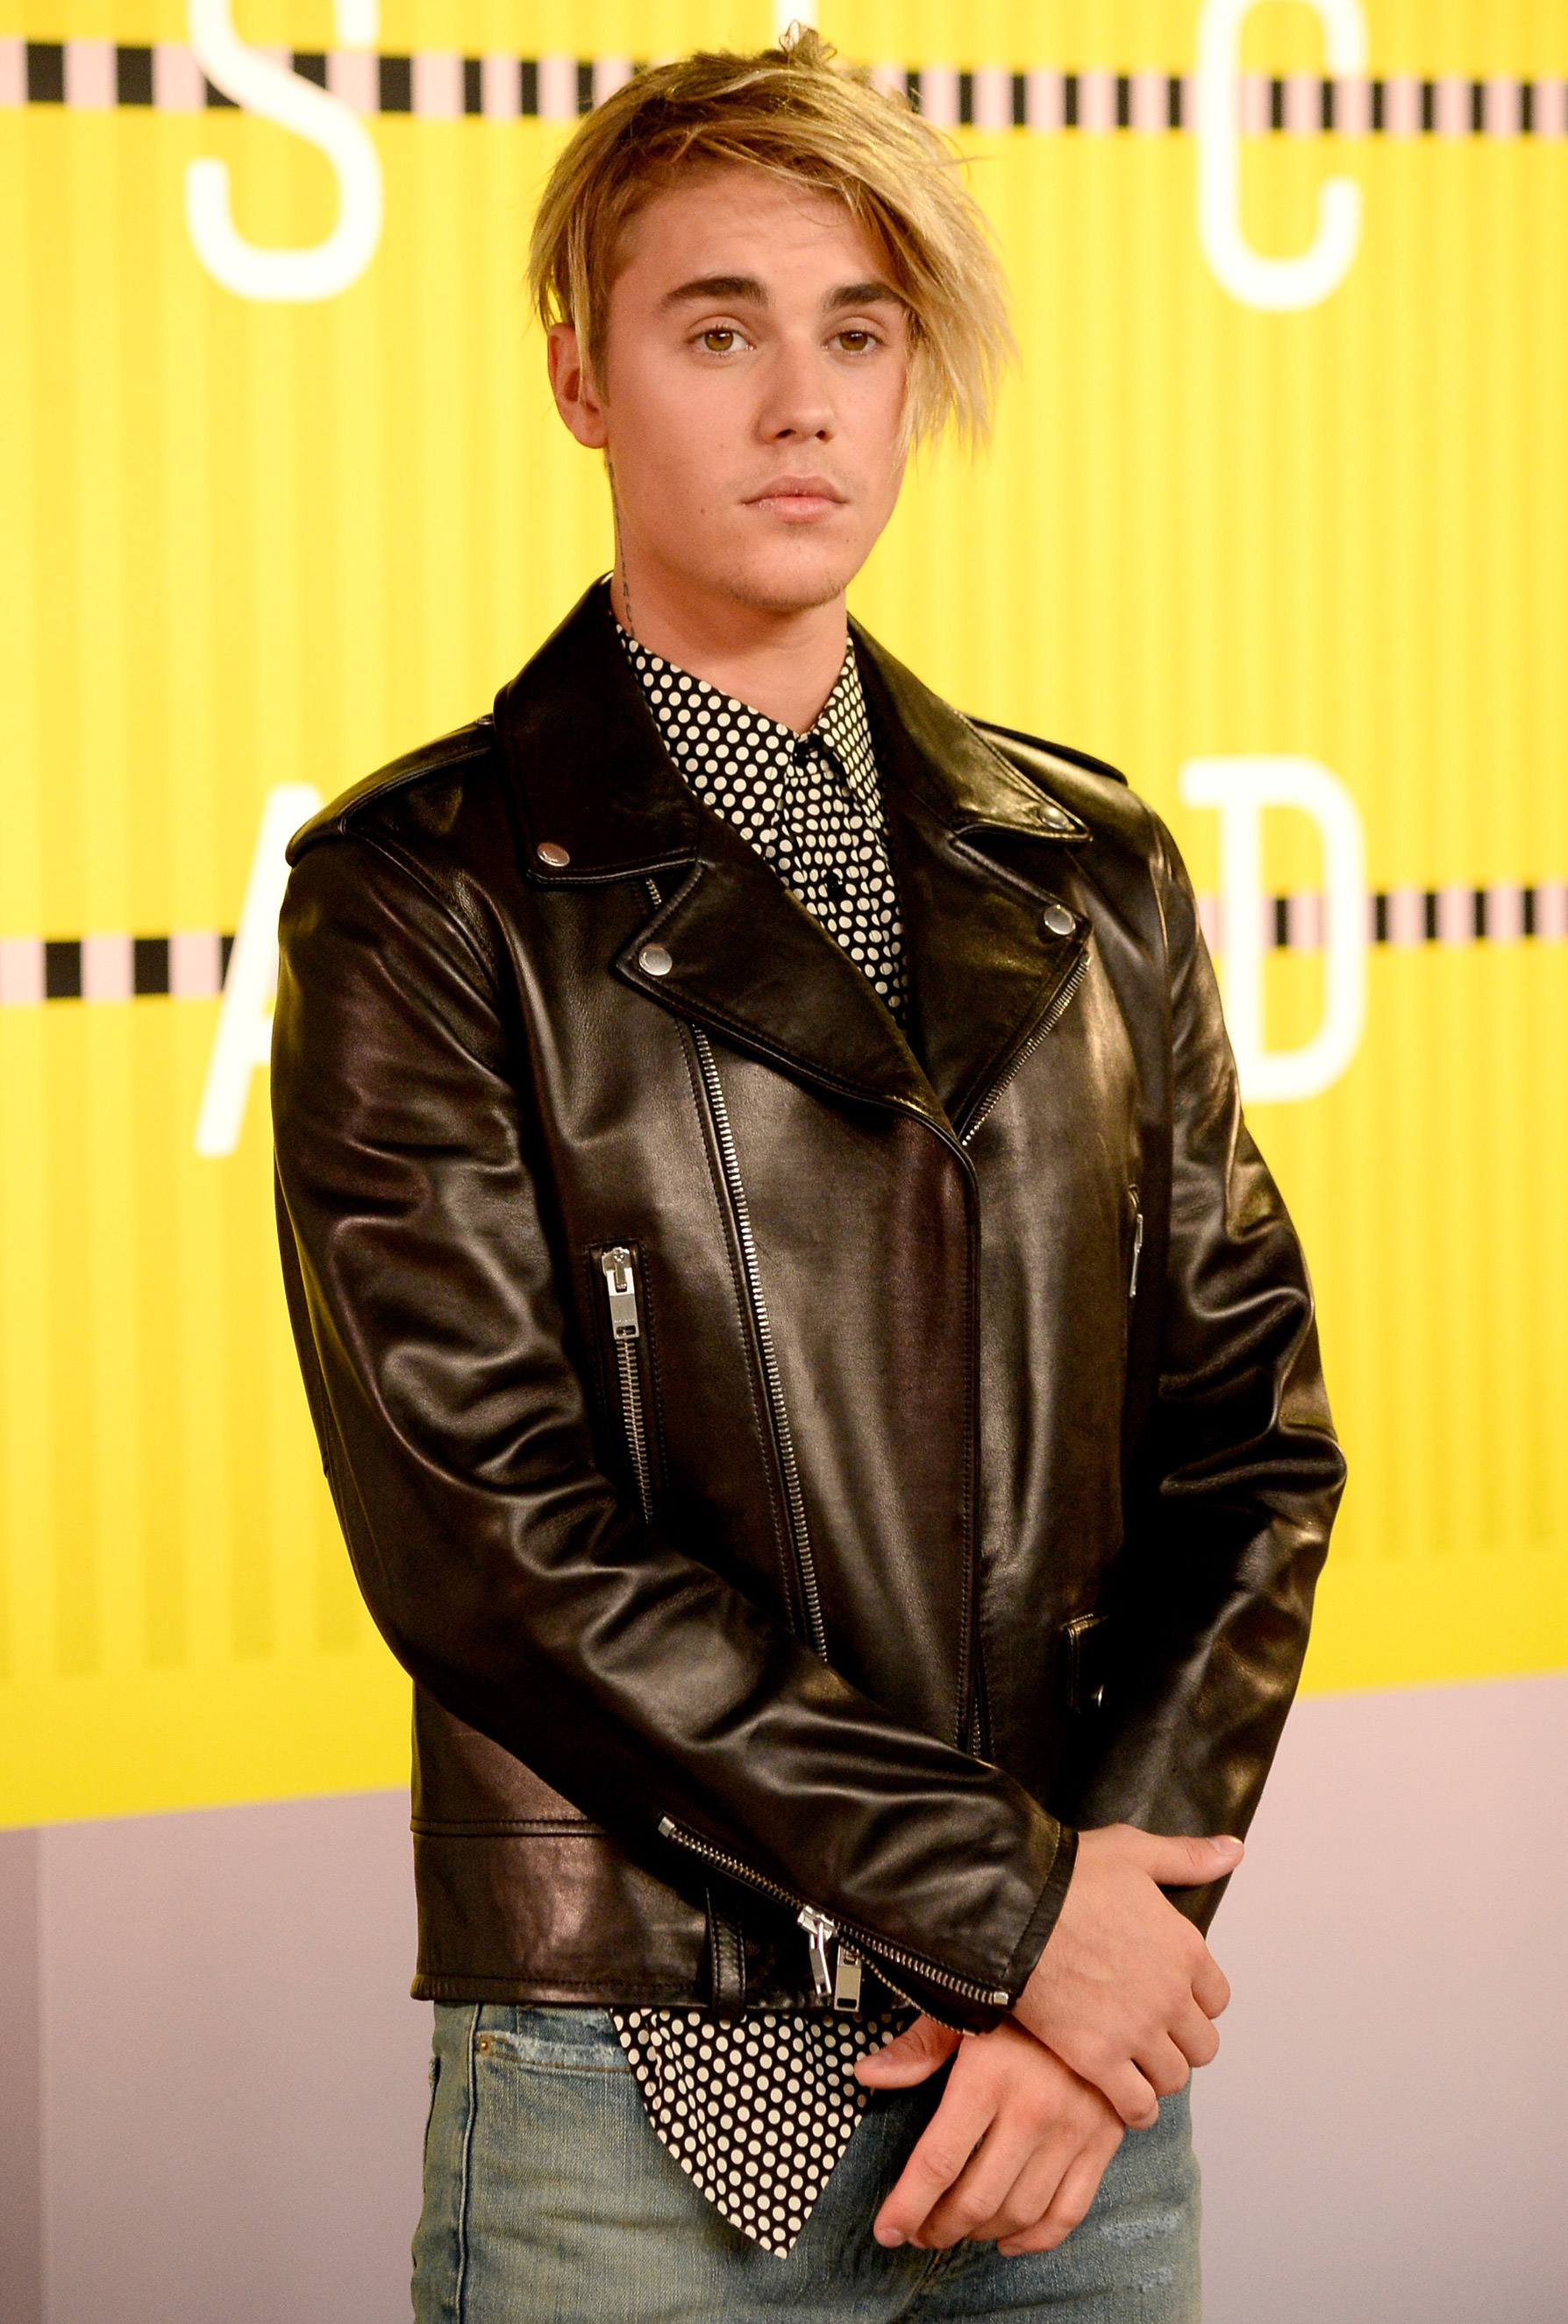 Justin Bieber arrives at the 2015 MTV Video Music Awards at Microsoft Theater on Aug. 30, 2015 in Los Angeles.